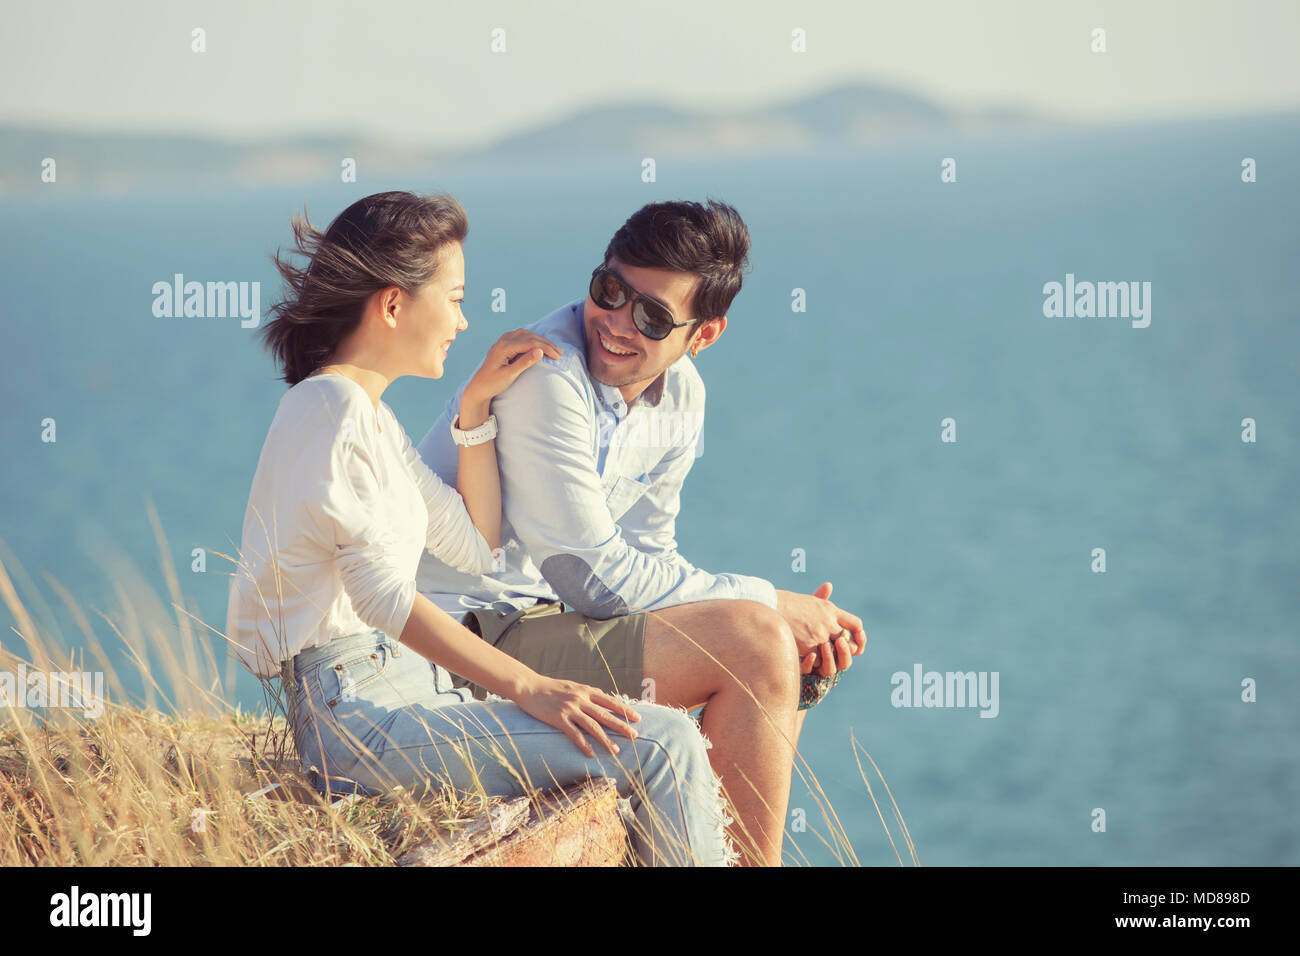 couples of younger asian man and woman relaxing with happiness on vacation time - Stock Image